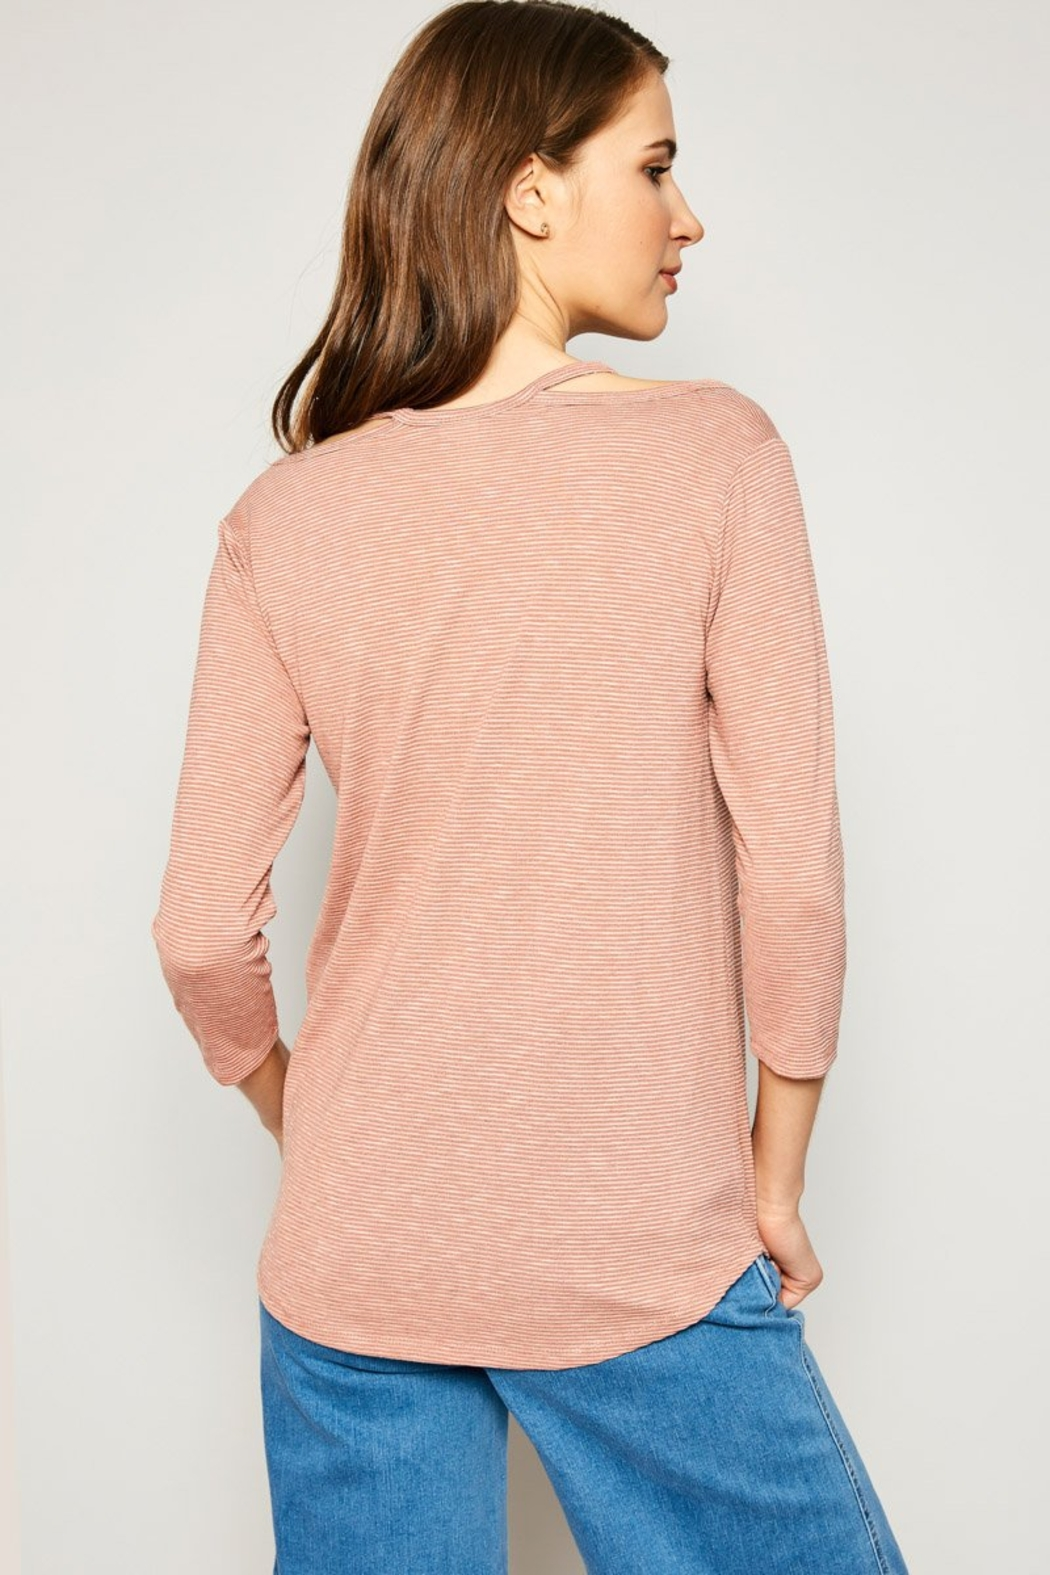 Hayden Los Angeles Women's Stripe Top With Shoulder Cutout Detail - Back Cropped Image